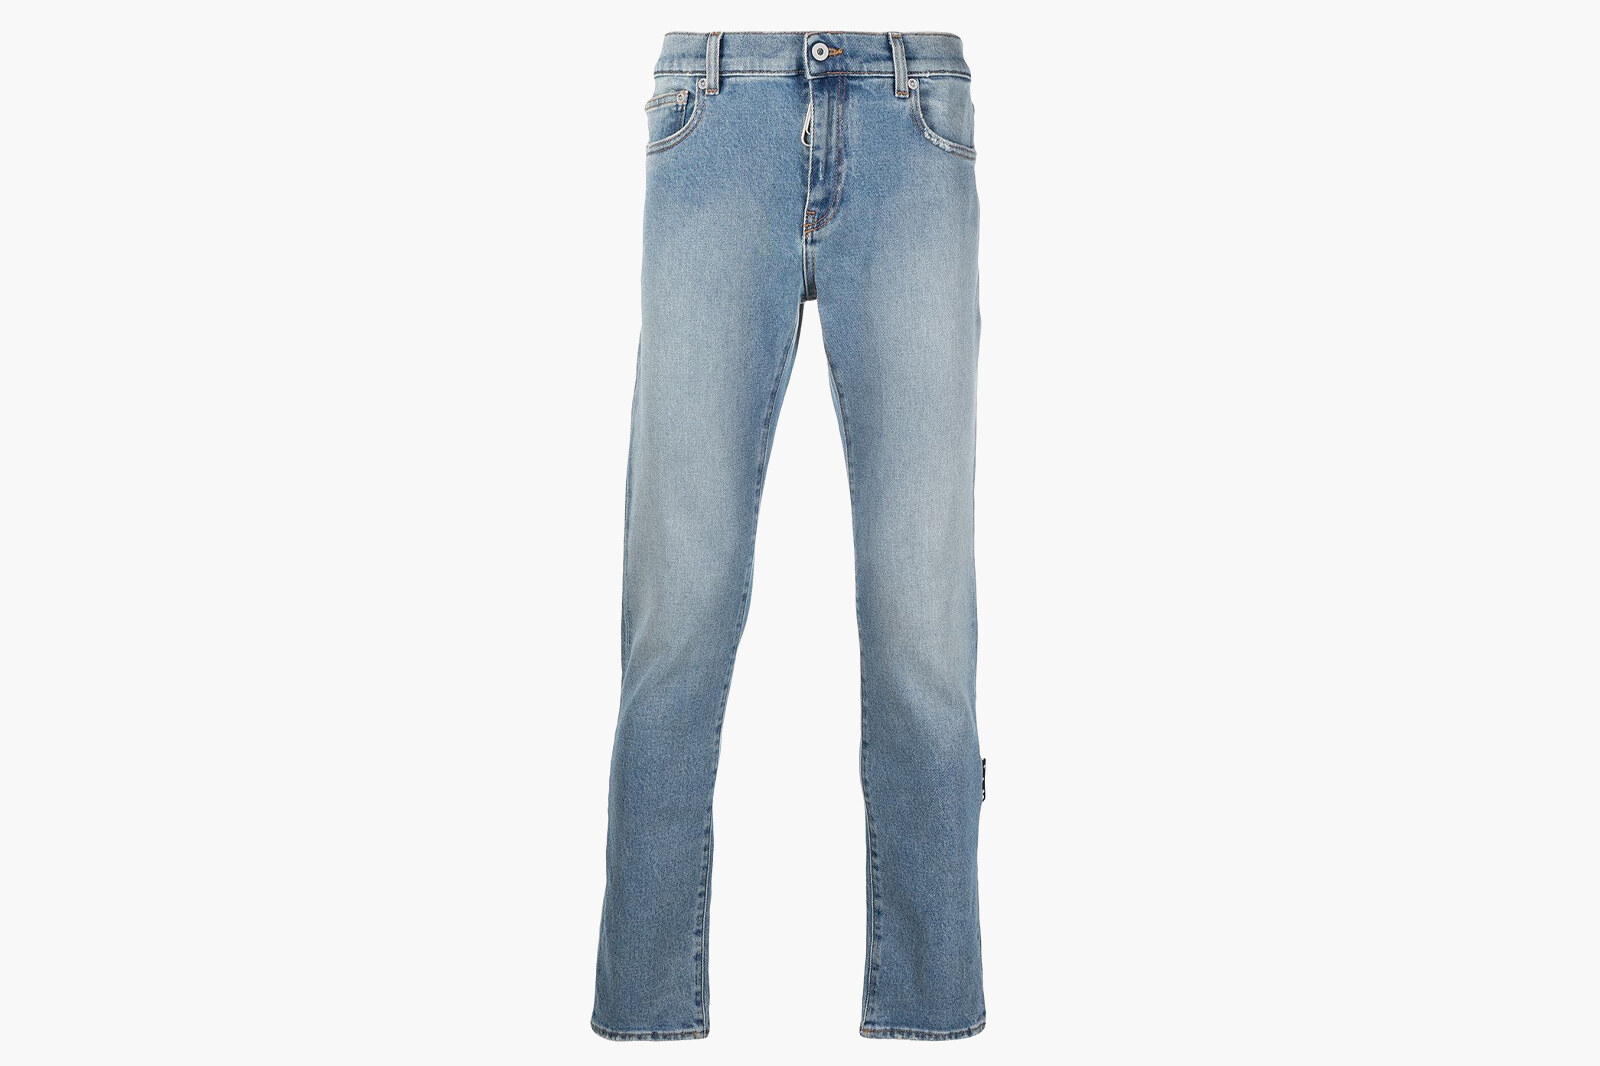 Off-White skinny fit jeans